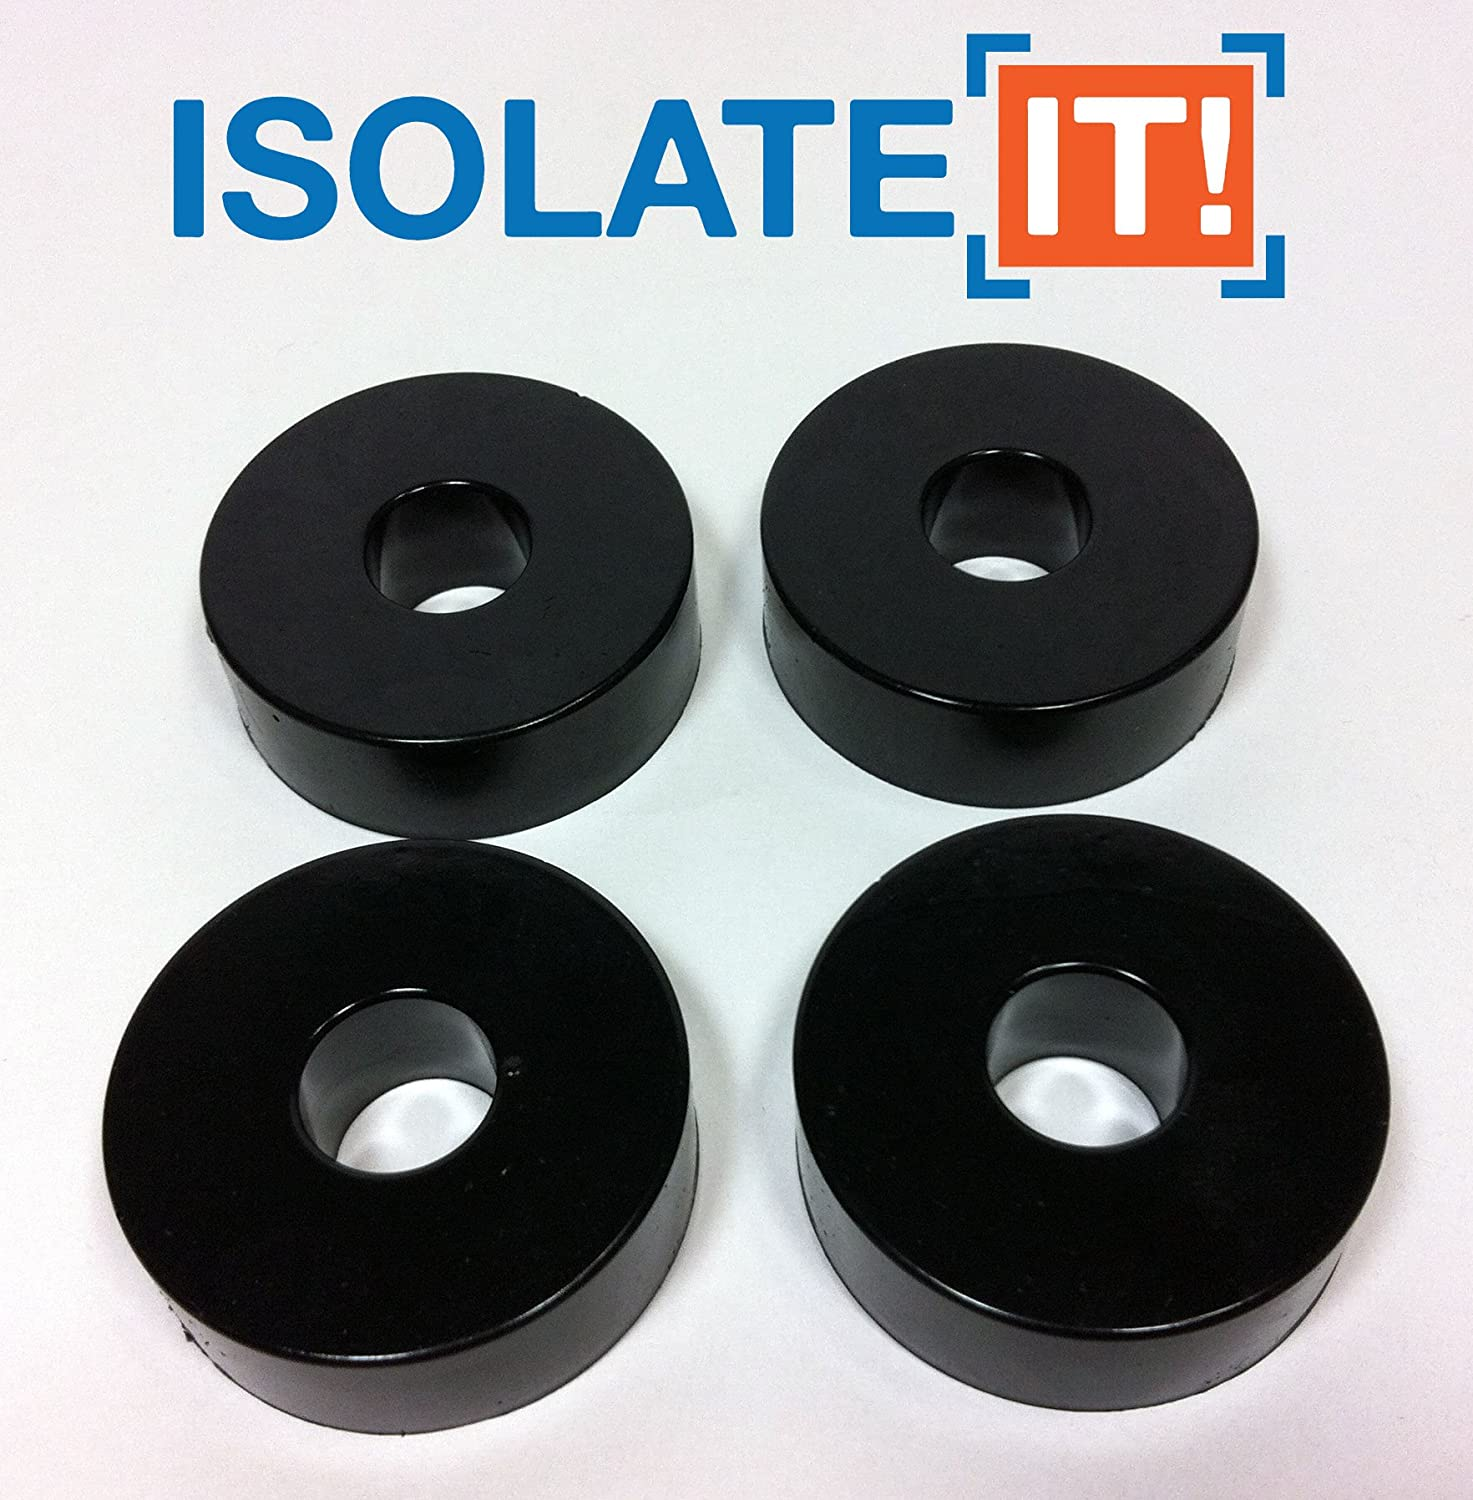 Isolate It Sorbothane Vibration Isolation Washer 30 Duro with 3M PSA 0.5 ID 1.5 OD 0.5 Thick 4 Pack